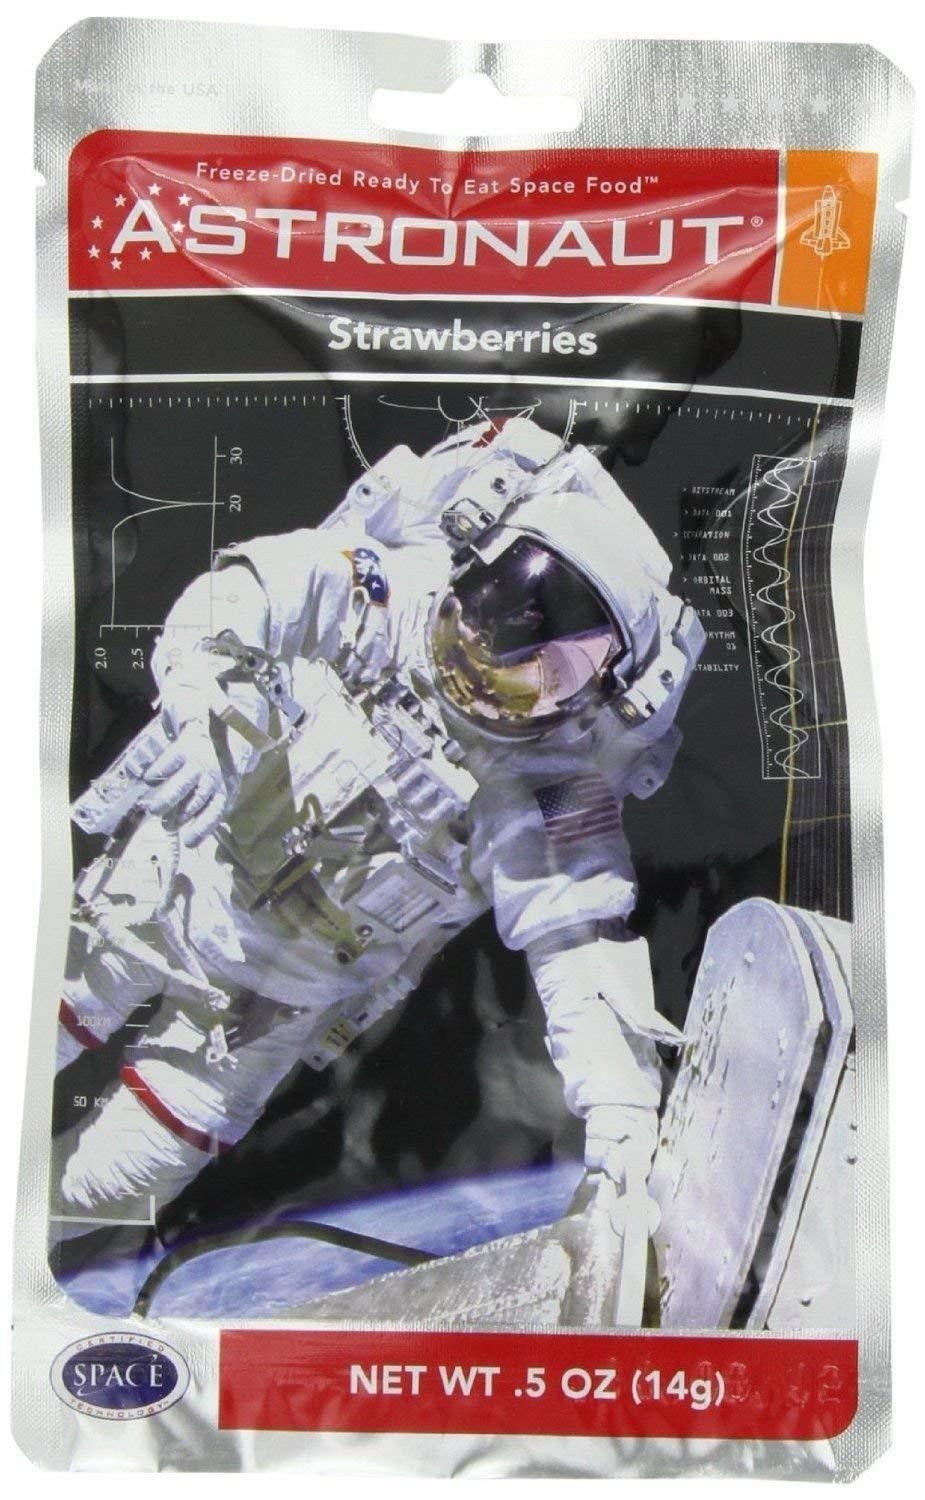 Astronaut Space Food Freeze-Dried Ready To Eat Fruit